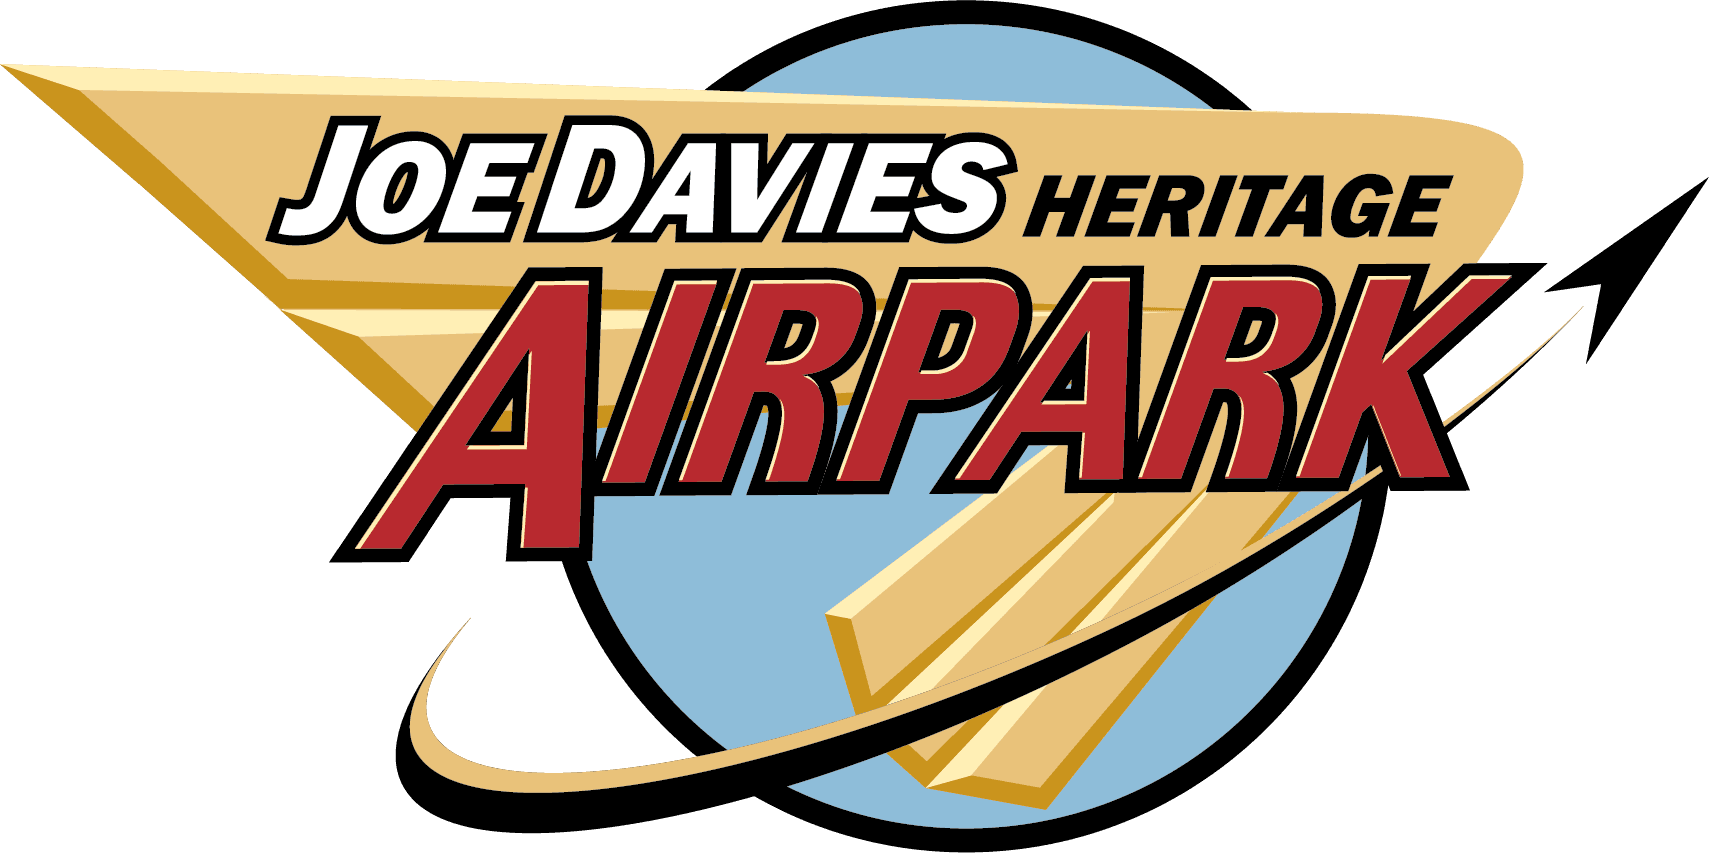 Joe Davies Heritage Airpark at Palmdale Plant 42 logo